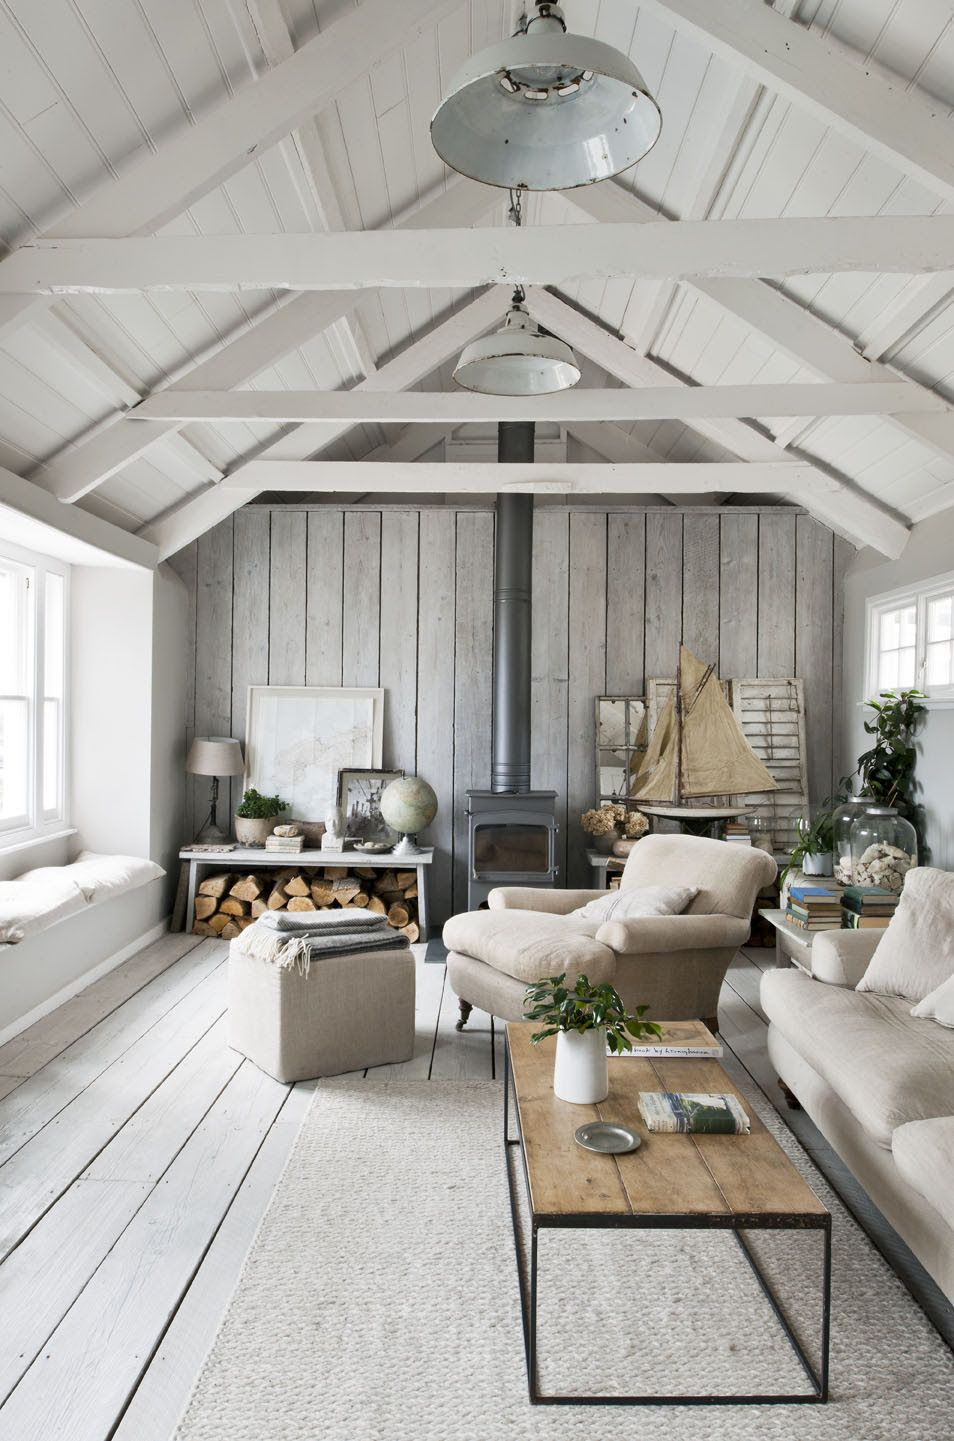 7830bf11db8c Another nice room | A-Frame | Scandinavian cottage, Home decor ...